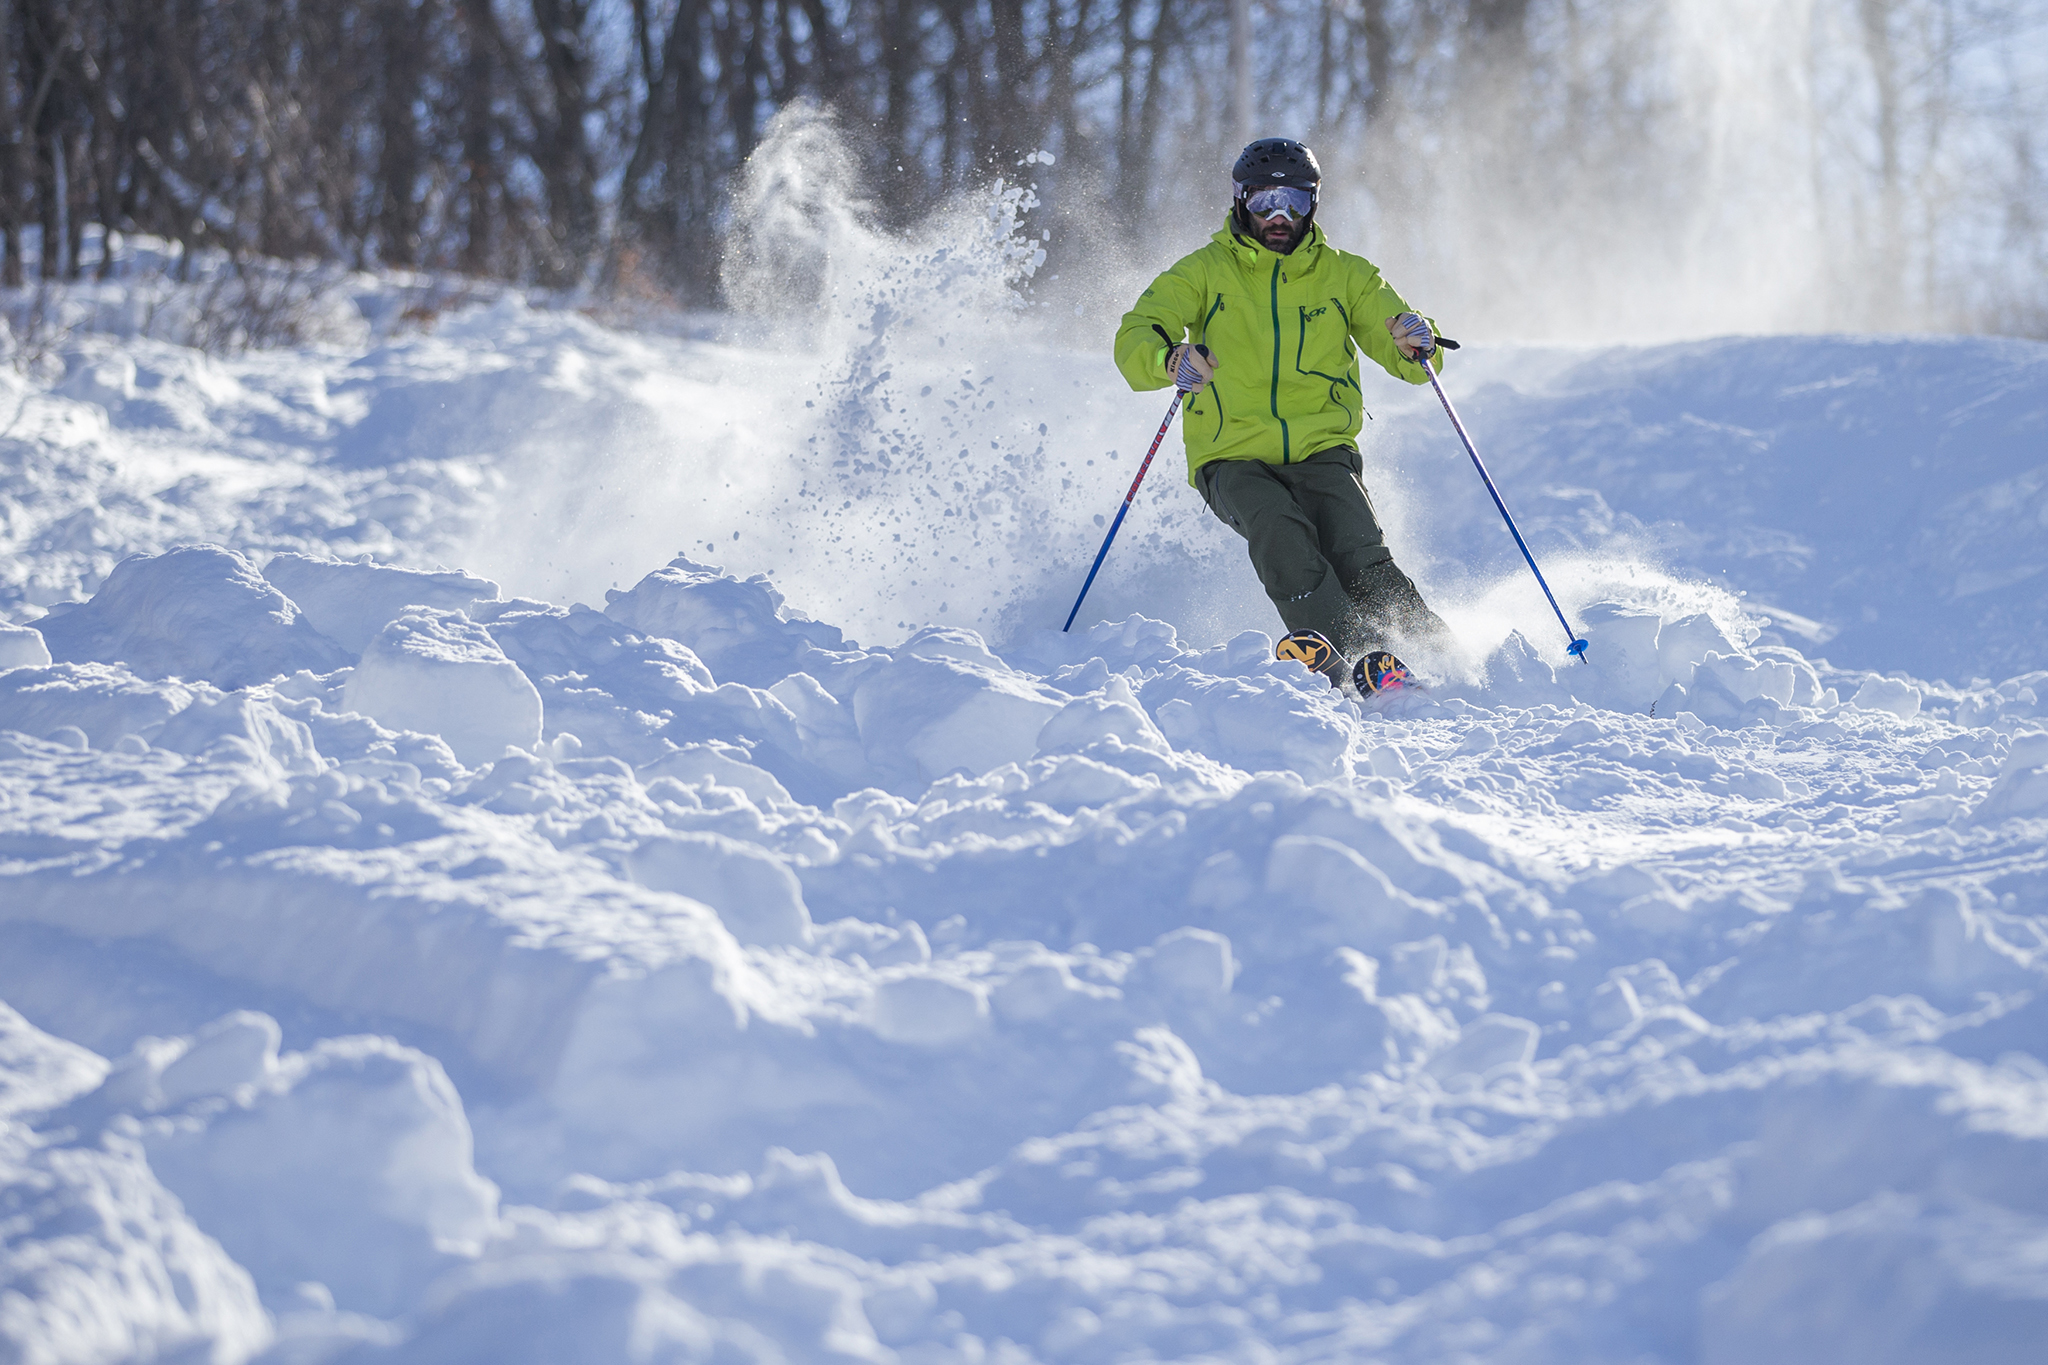 Best Ski Resorts Near NYC For Winter Getaways In The Snow